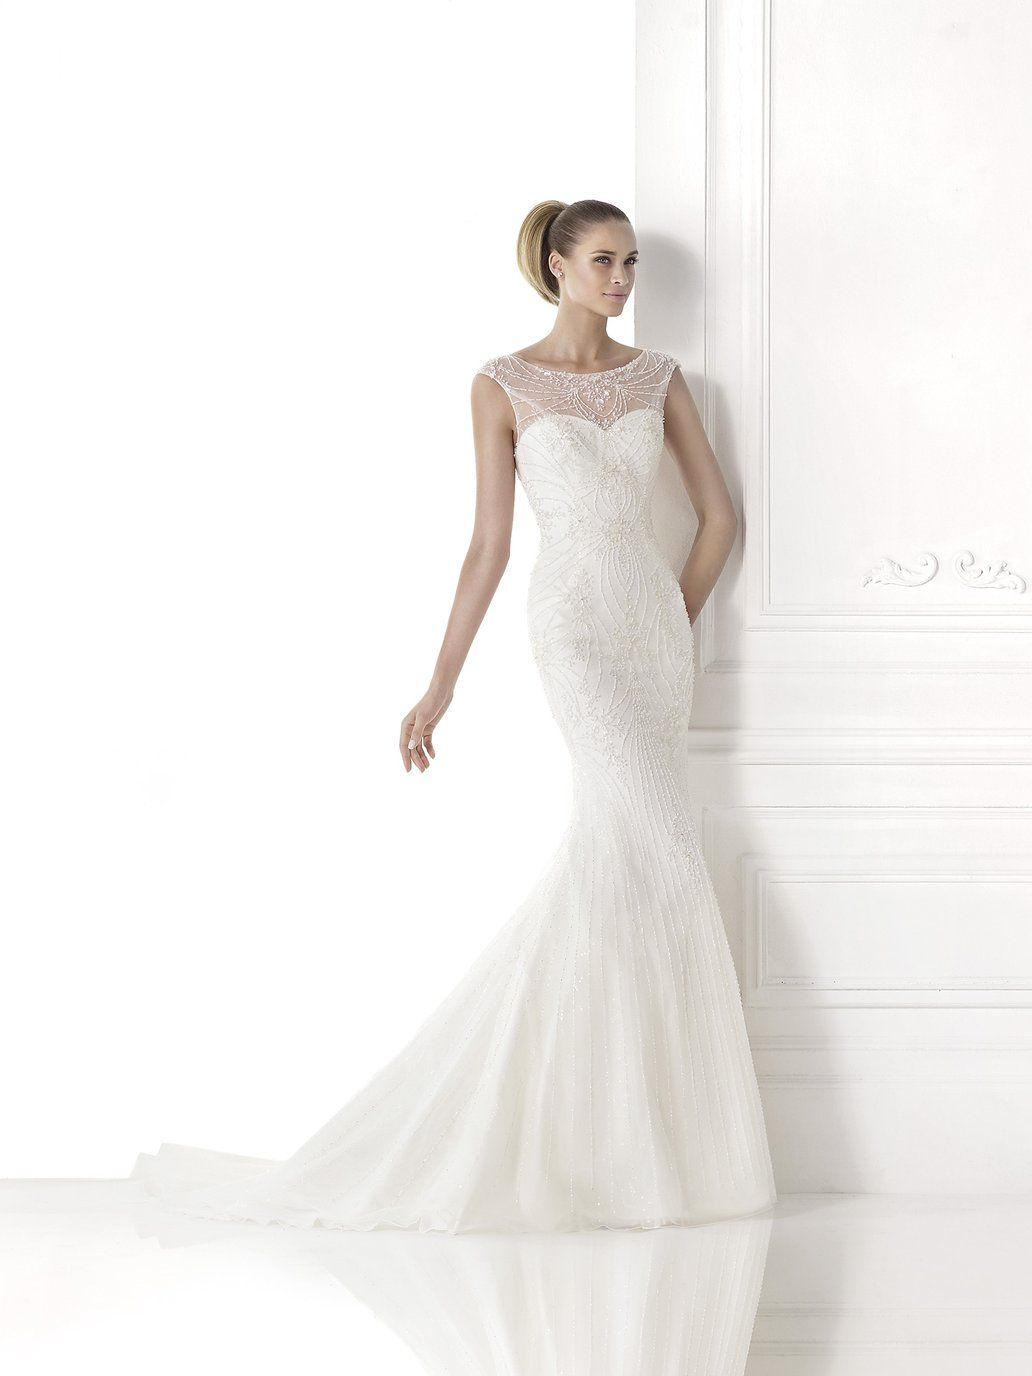 Pronovias Maine wedding dress from the 2015 collection | plush ...